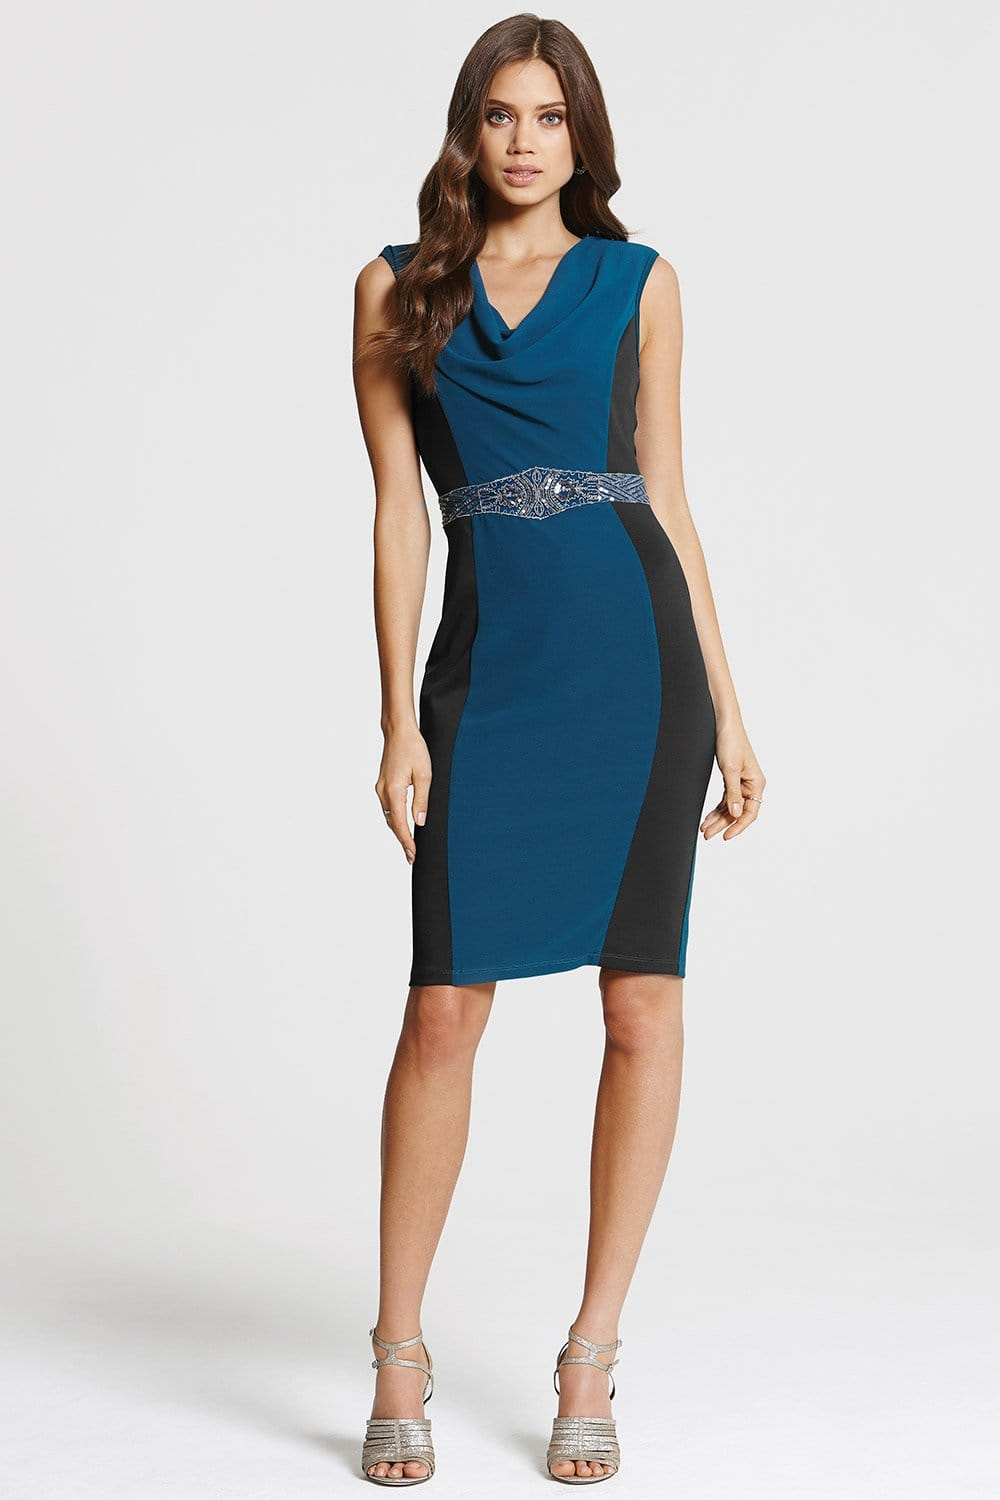 Teal And Black Cowl Neck Bodycon Dress From Little